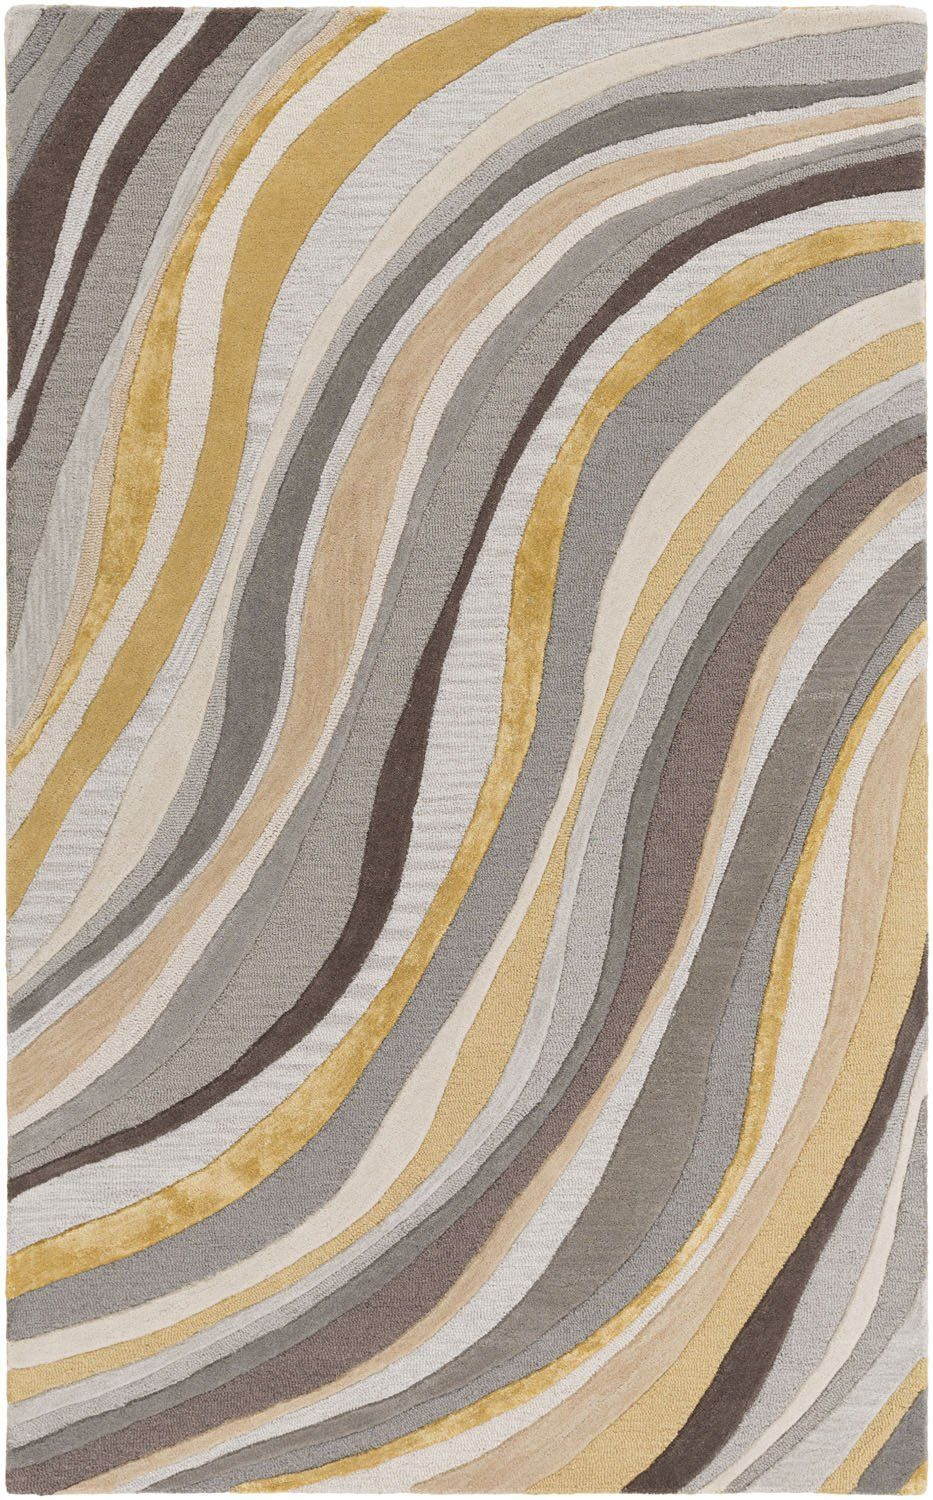 Lounge Lge 2291 Grey Gold Contemporary Rug Interior